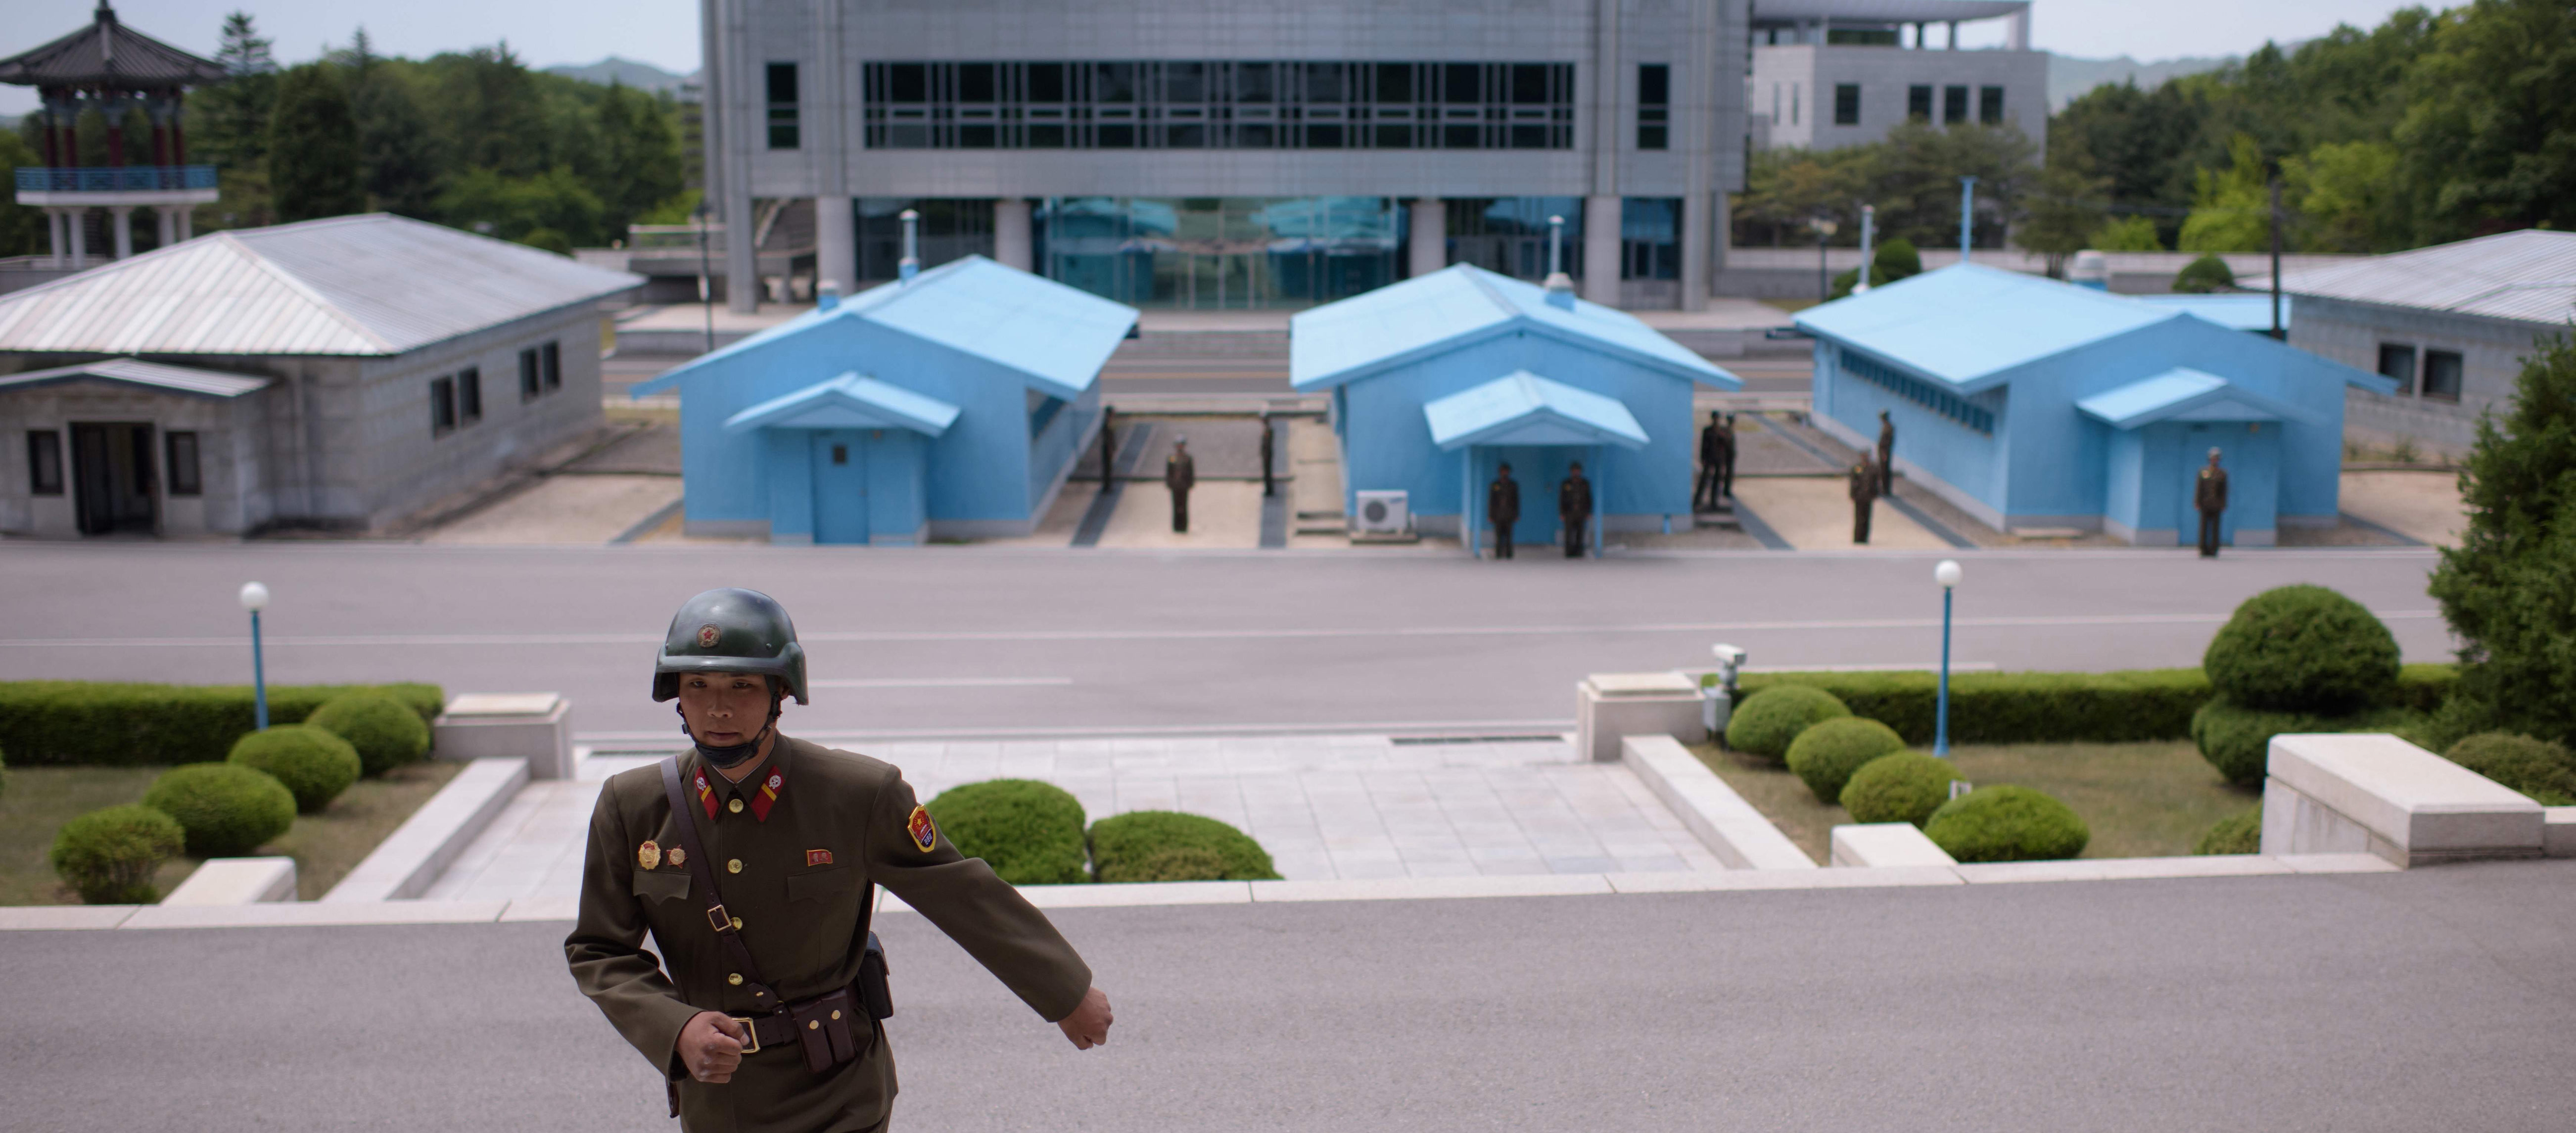 The three blue huts in Panmunjom in the Demilitarized Zone